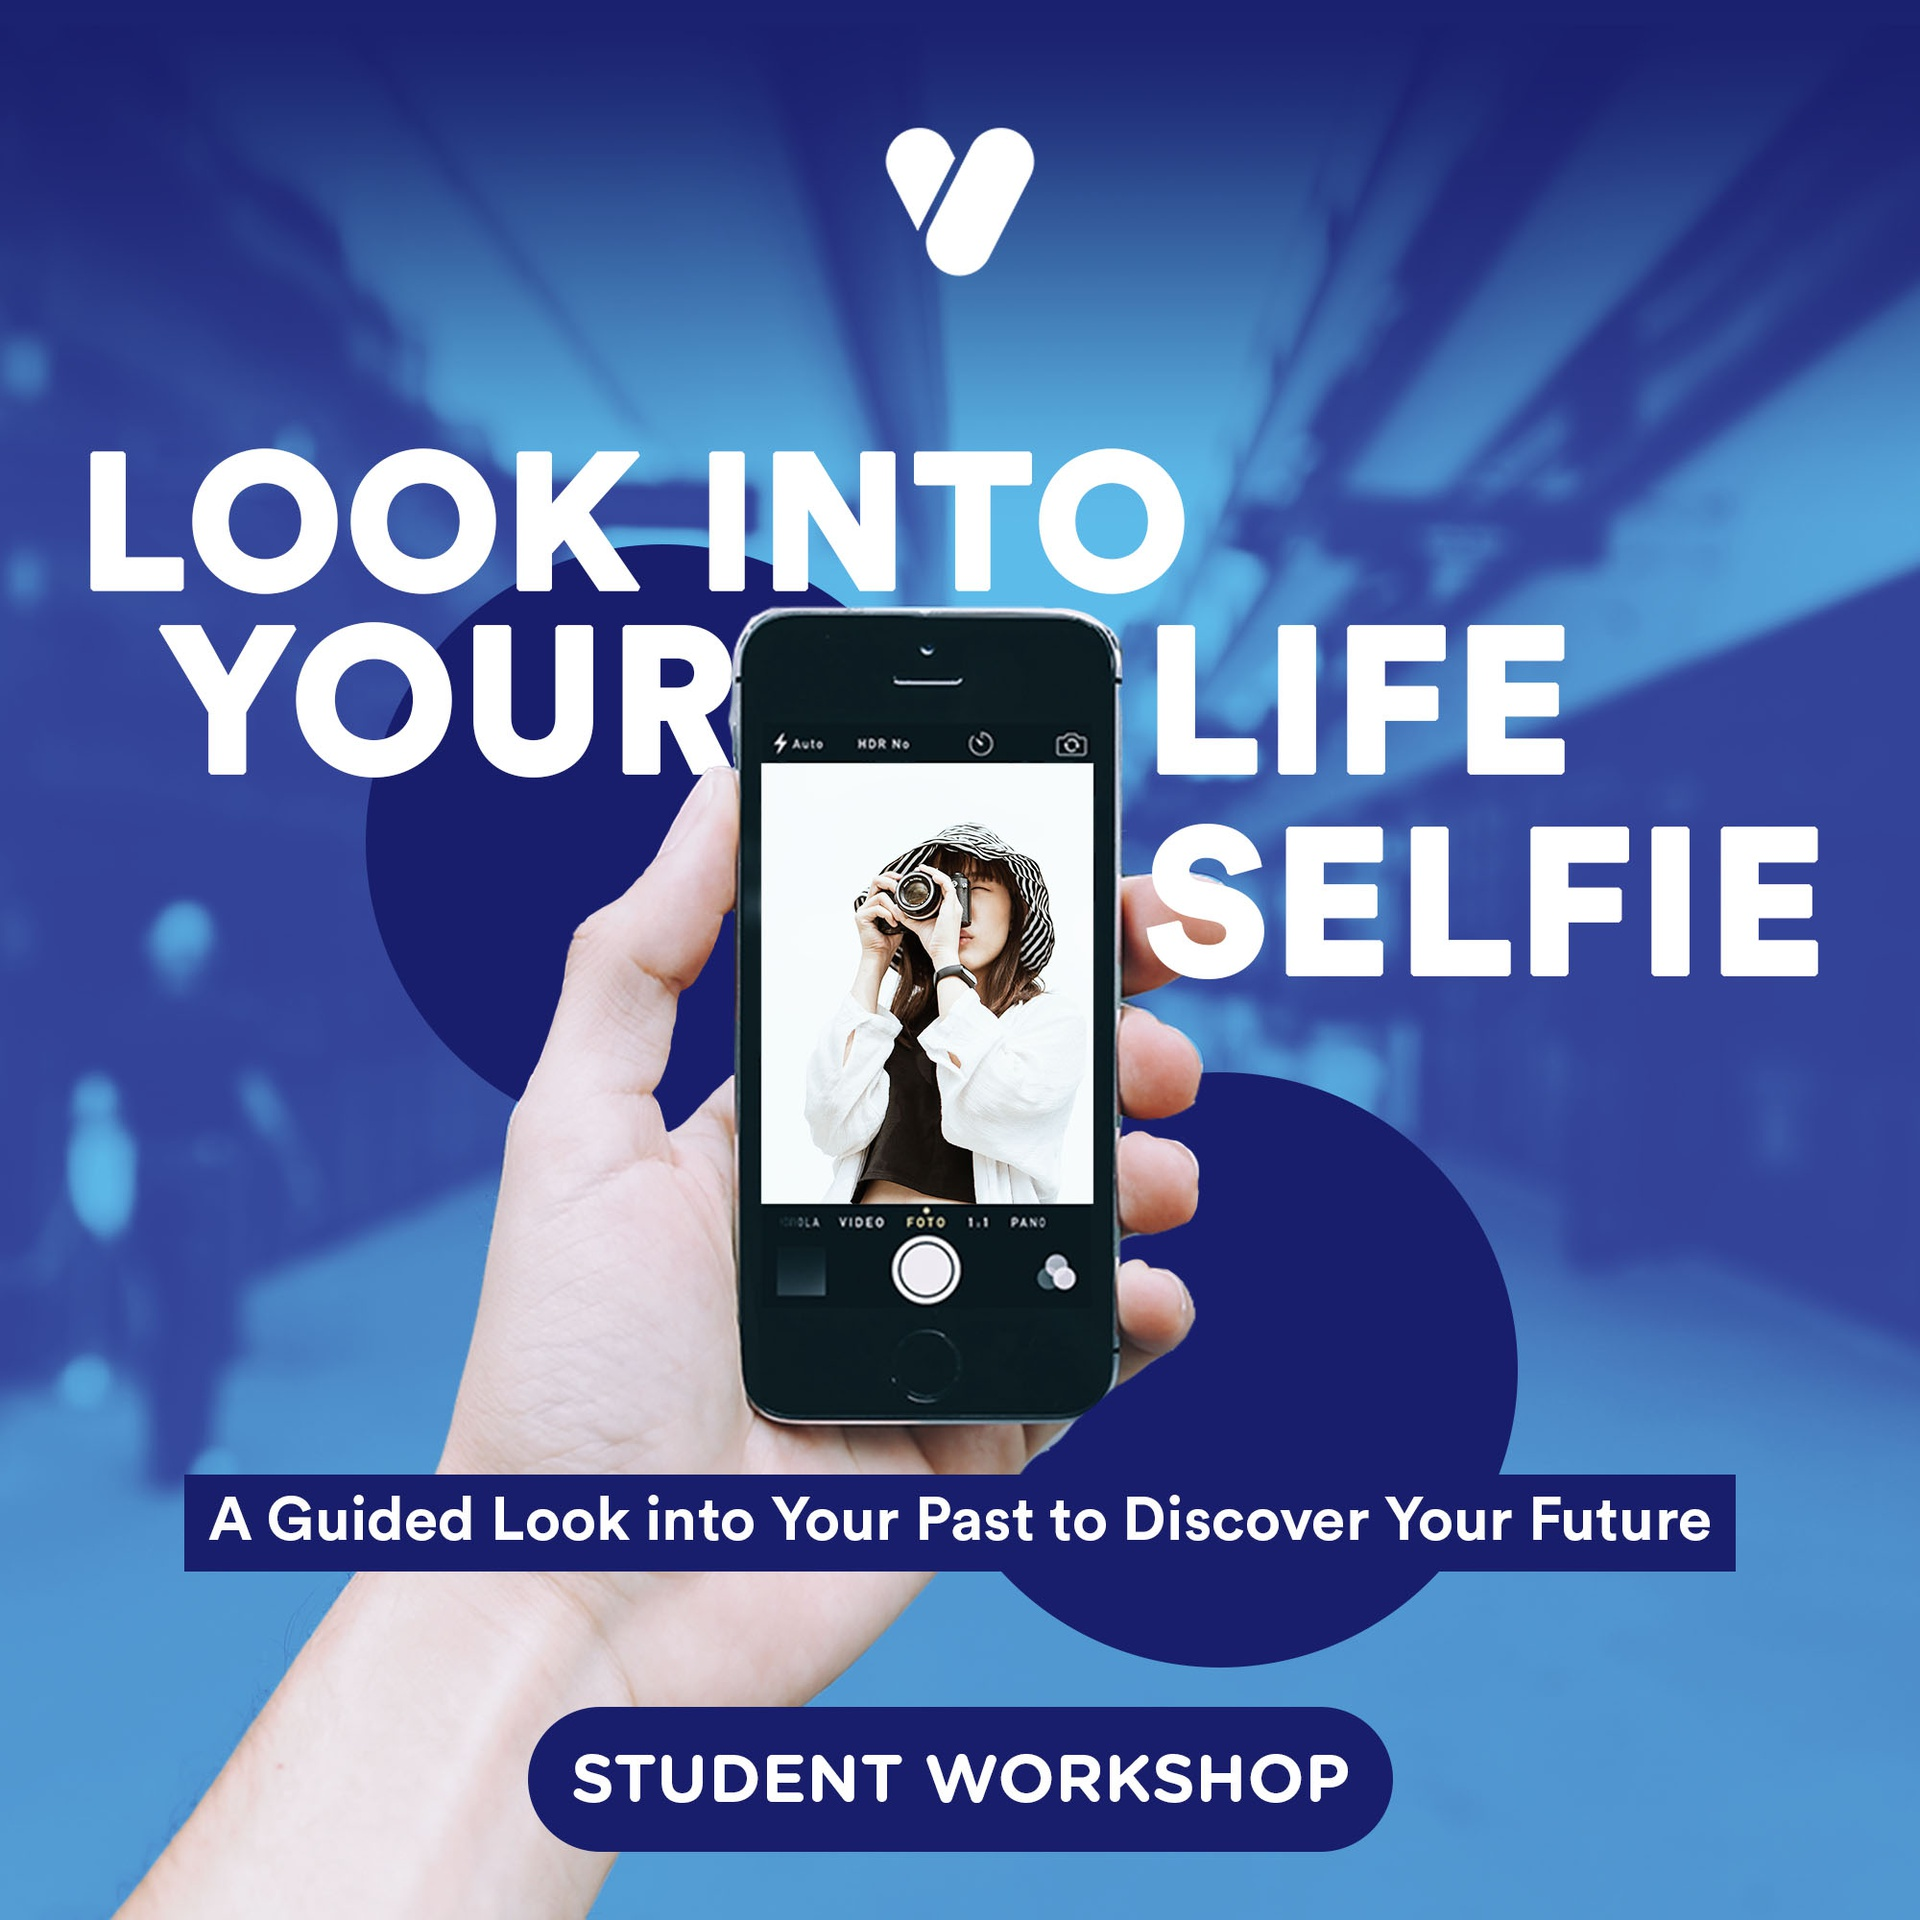 Look into Your Life Selfie: A Guided Look into Your Past to Discover Your Future